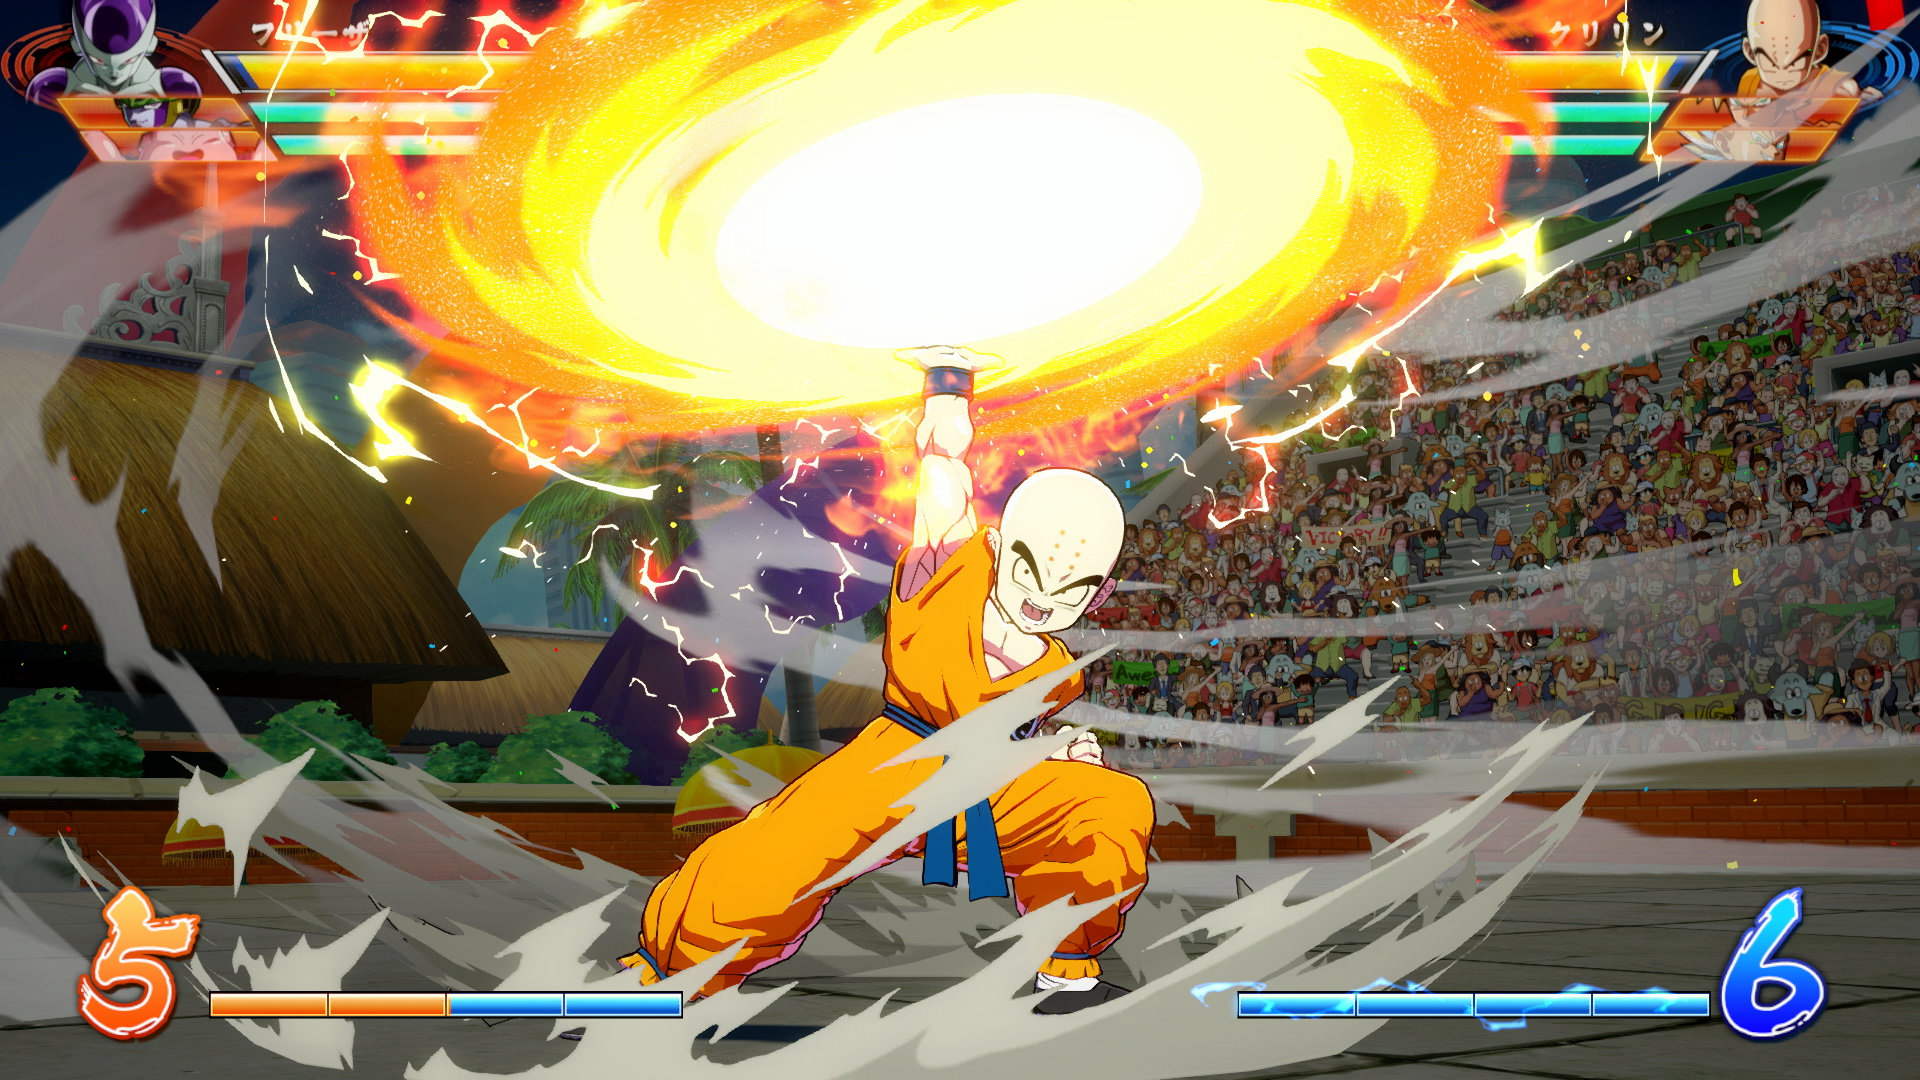 Dragon Ball FighterZ special move